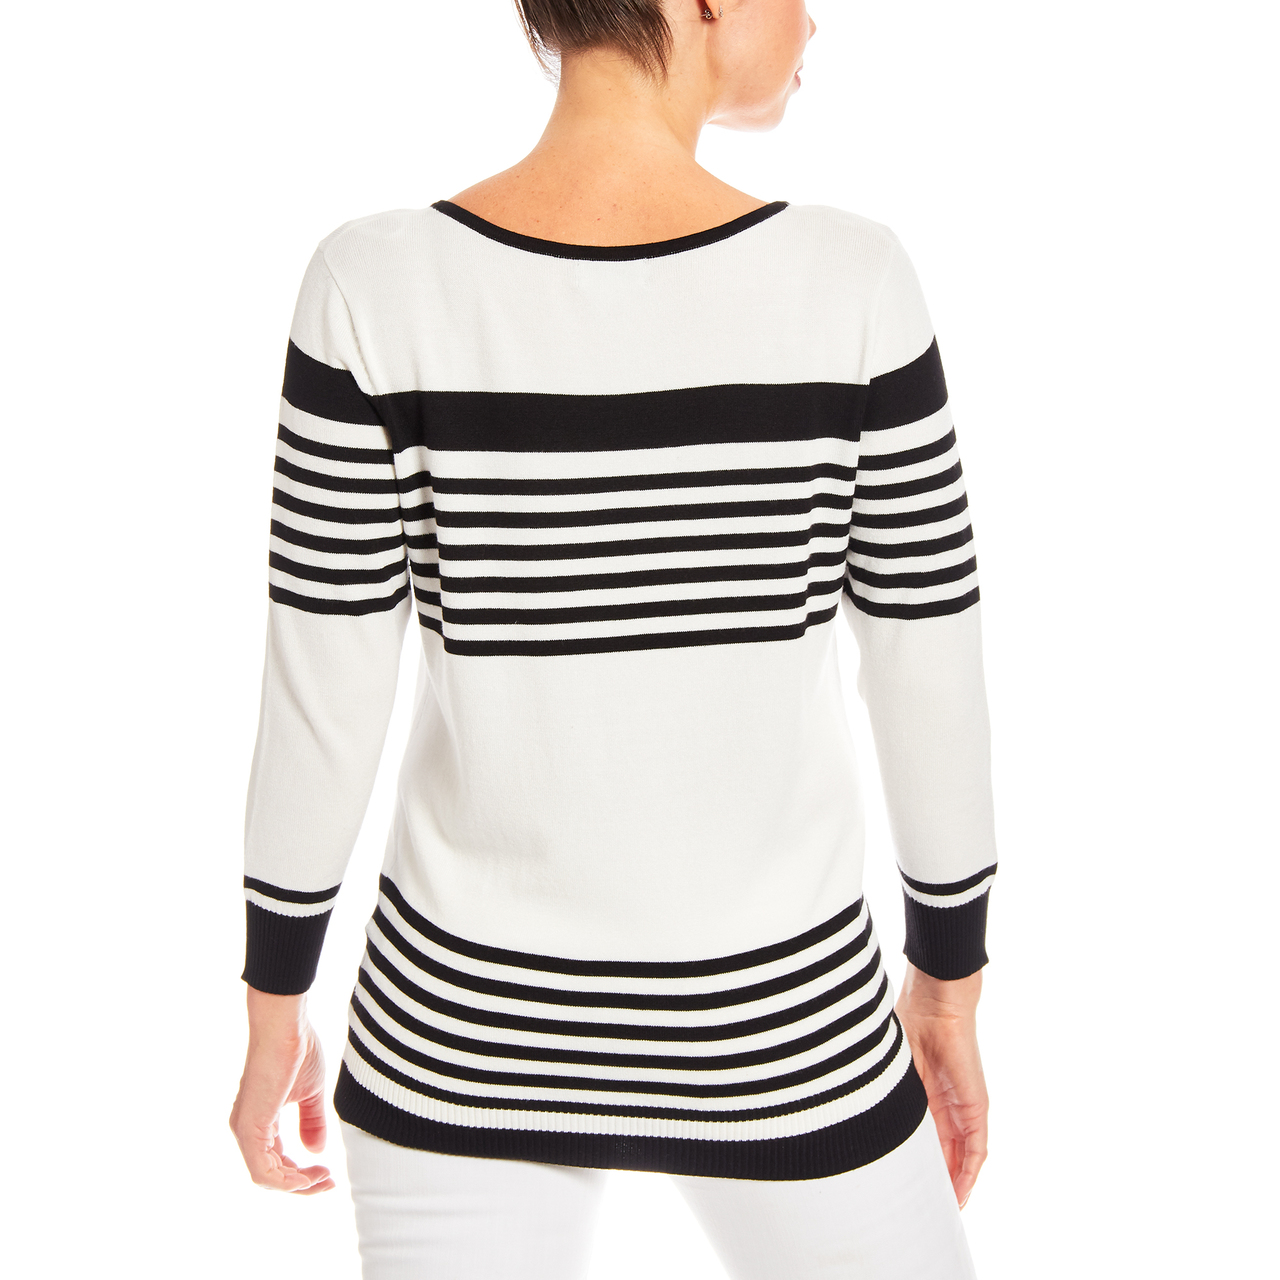 3/4 Sleeve Square Neck Stripe Sweater in Black And Ivory